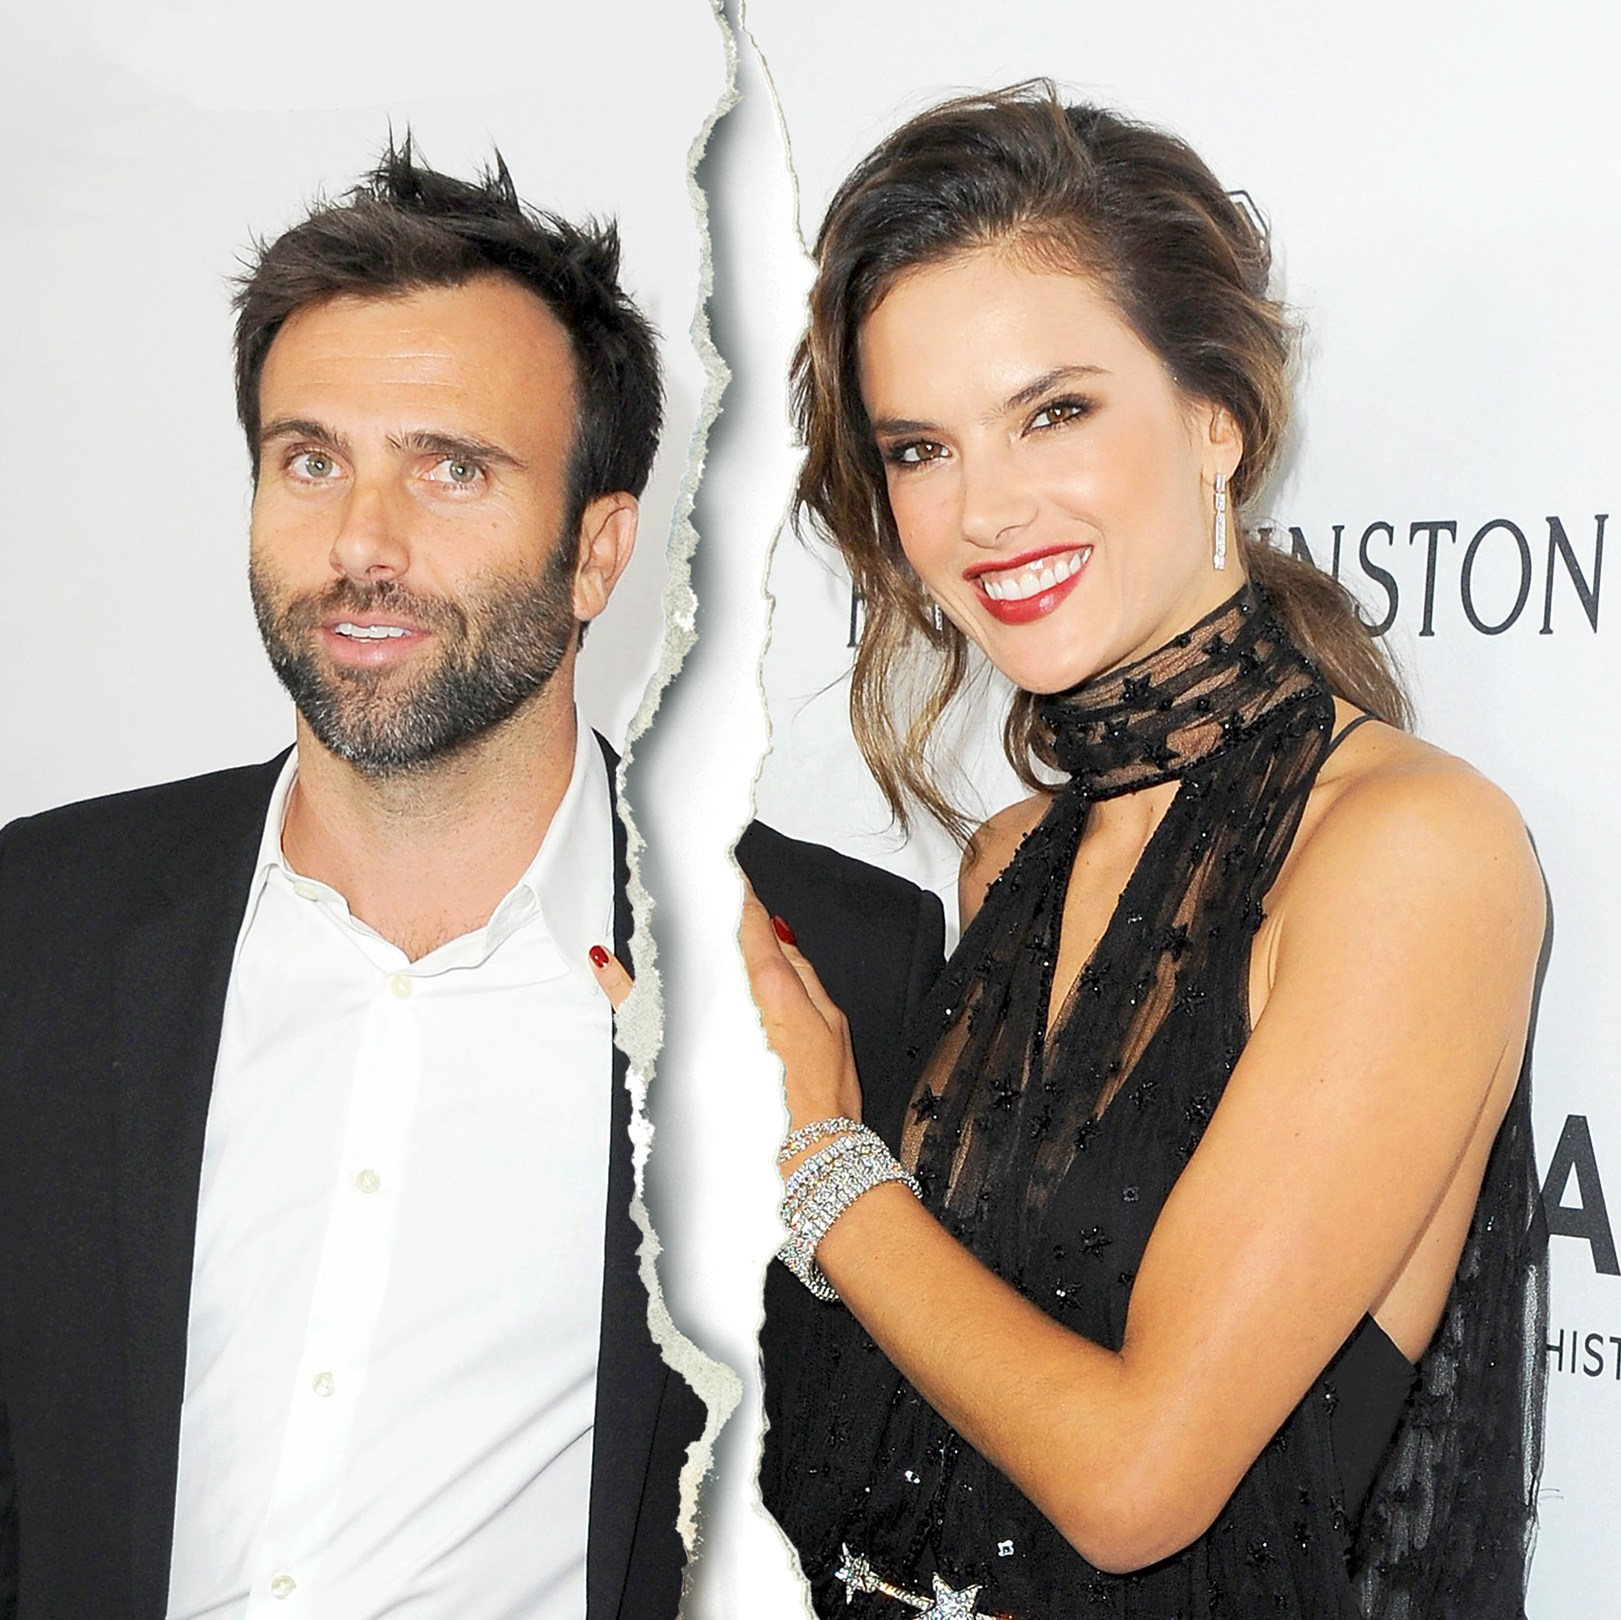 Alessandra Ambrosio and Jamie Mazur arrive at amfAR's Inspiration Gala 2015 Los Angeles at Milk Studios in Hollywood, California.